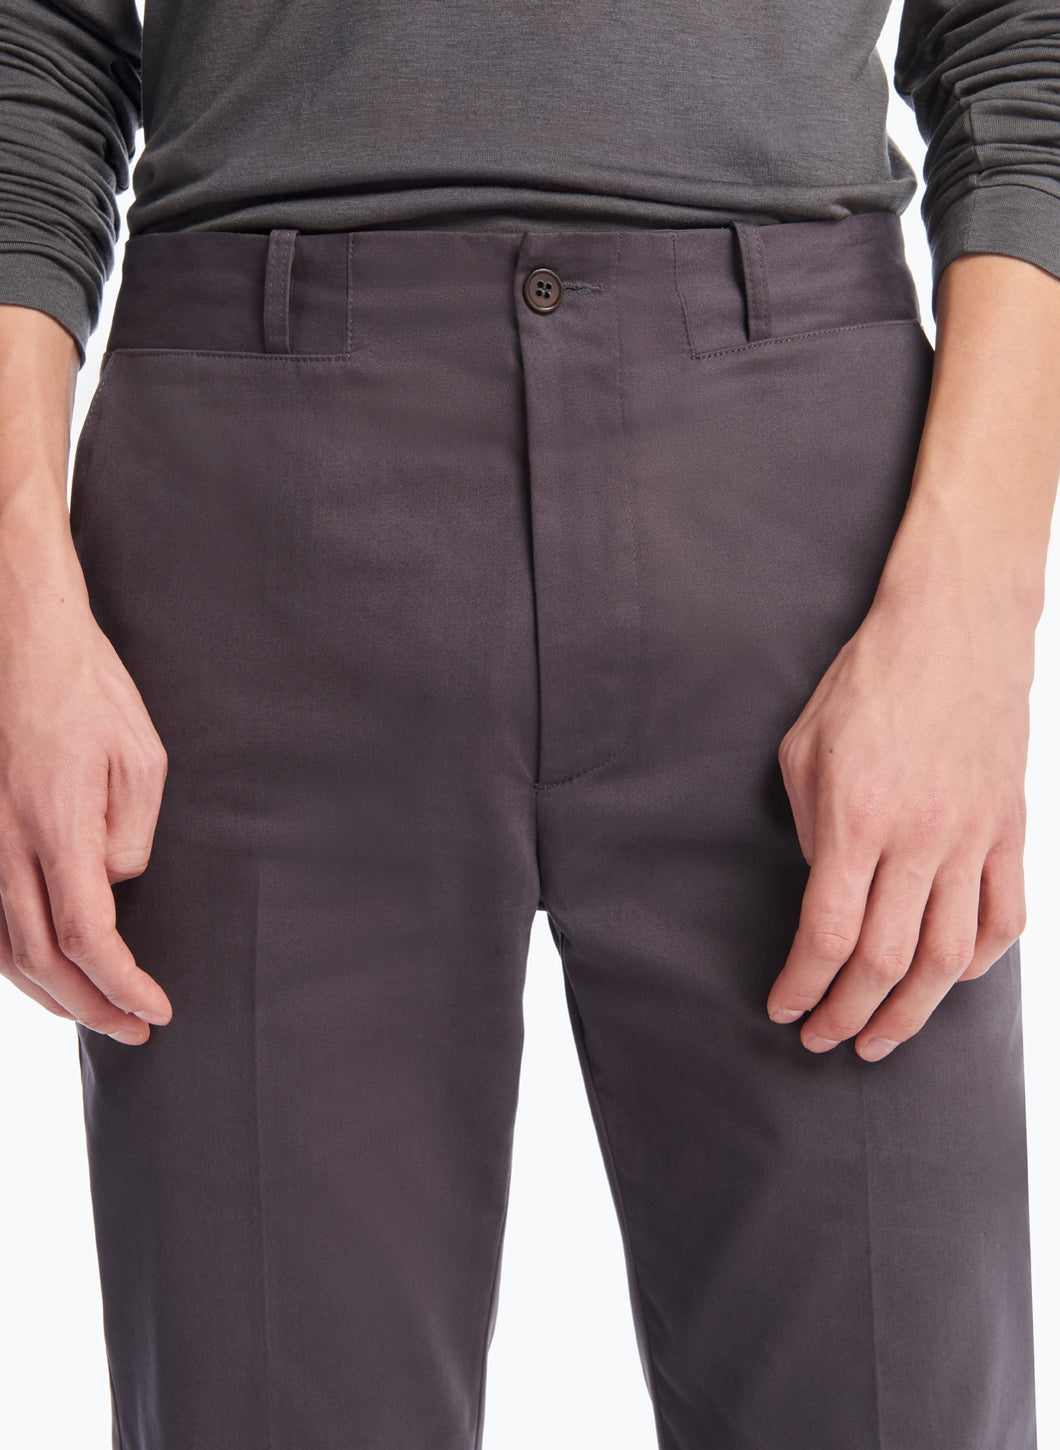 Pants with Inlayed Belt in Slate Grey Cotton Satin